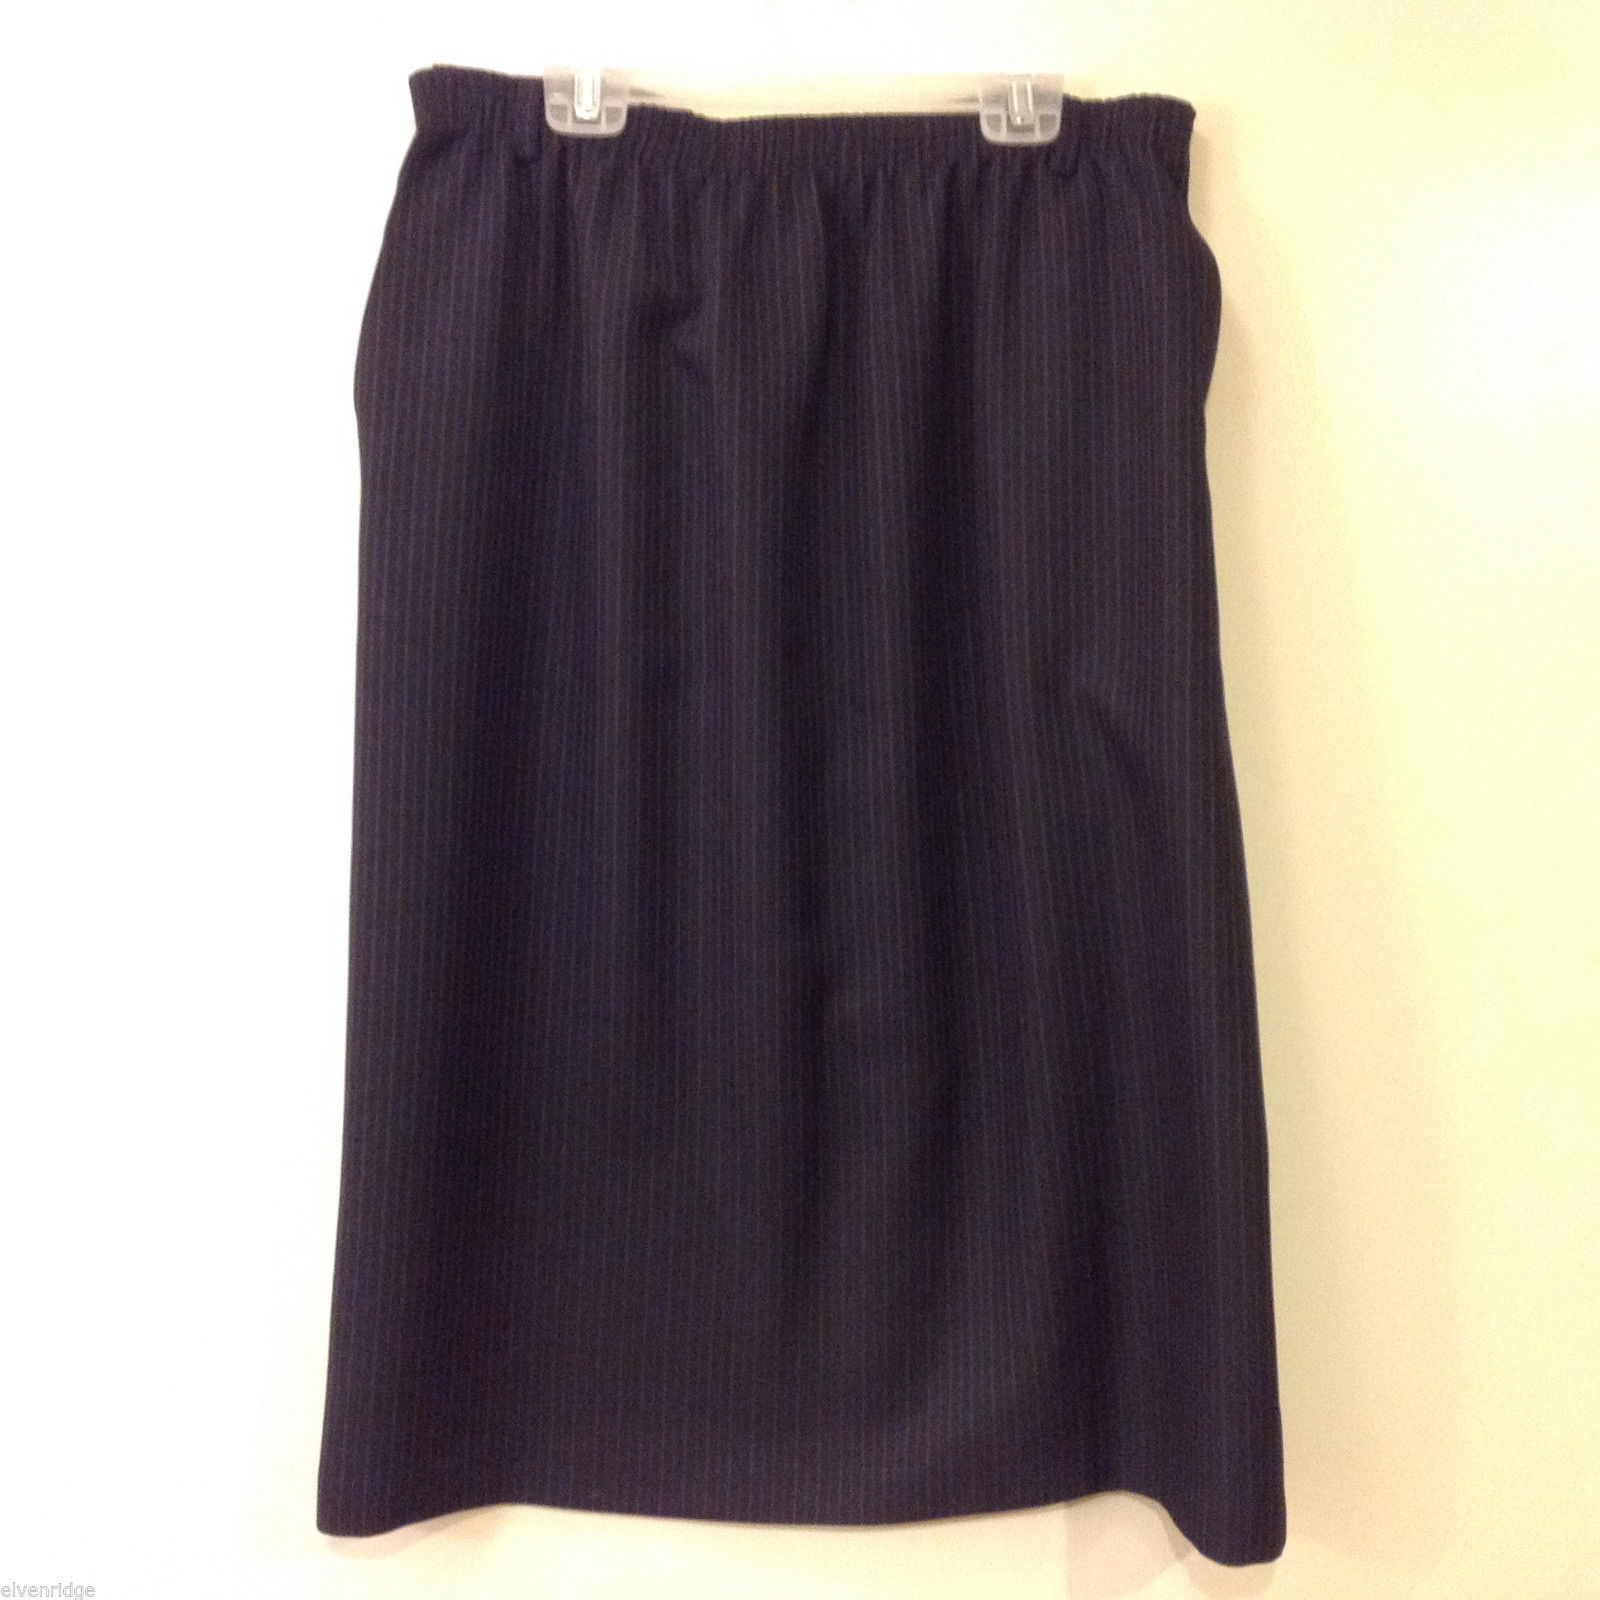 Alred Dunner Women's Size 14 A-Line Skirt Dark Navy Blue, Red & Blue Pinstripes